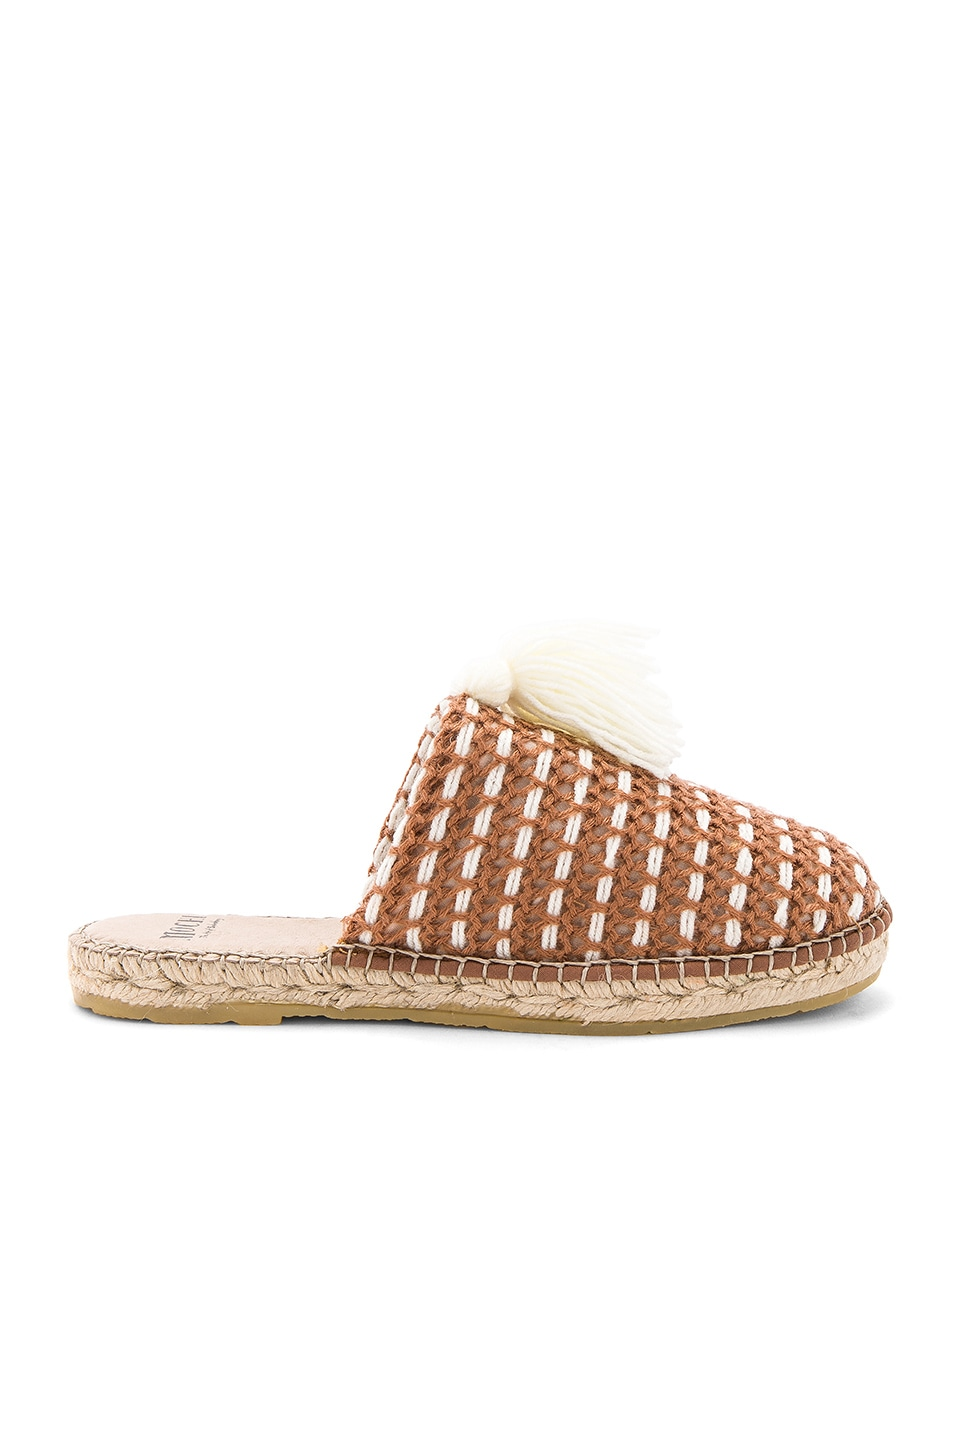 The Zana Espadrille by All Things Mochi